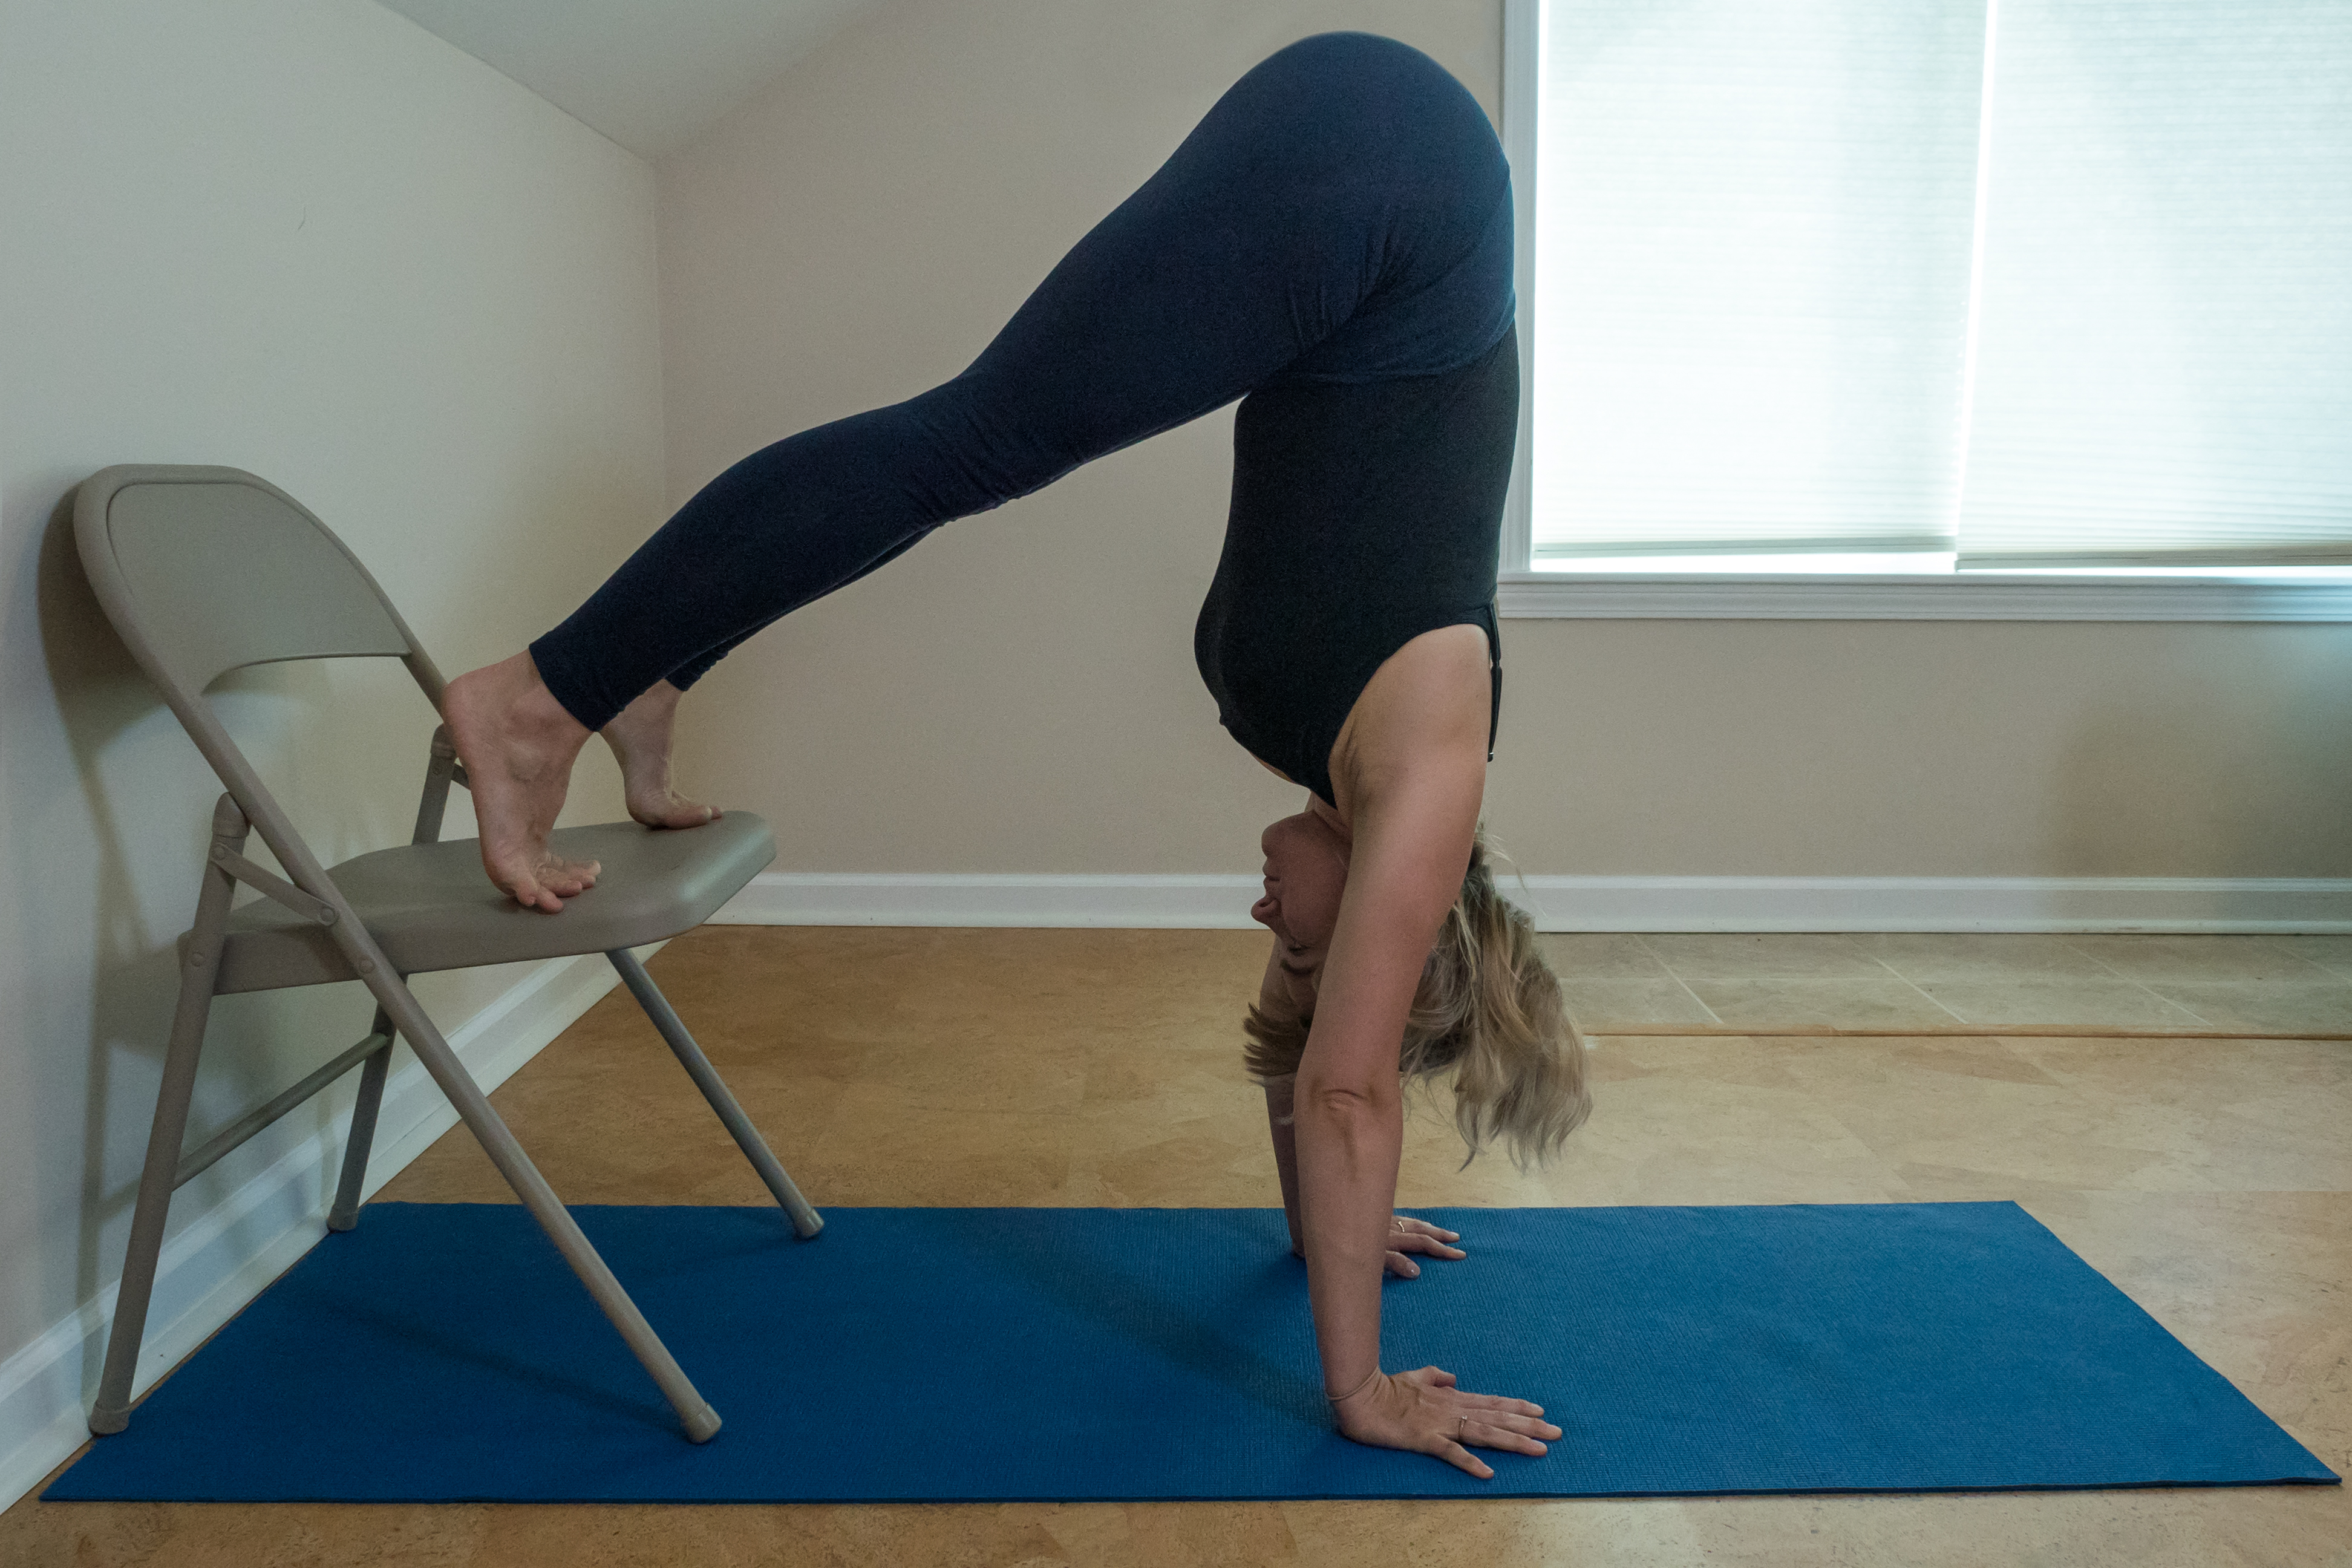 woman preparing for handstand with L-handstand feet on a chair